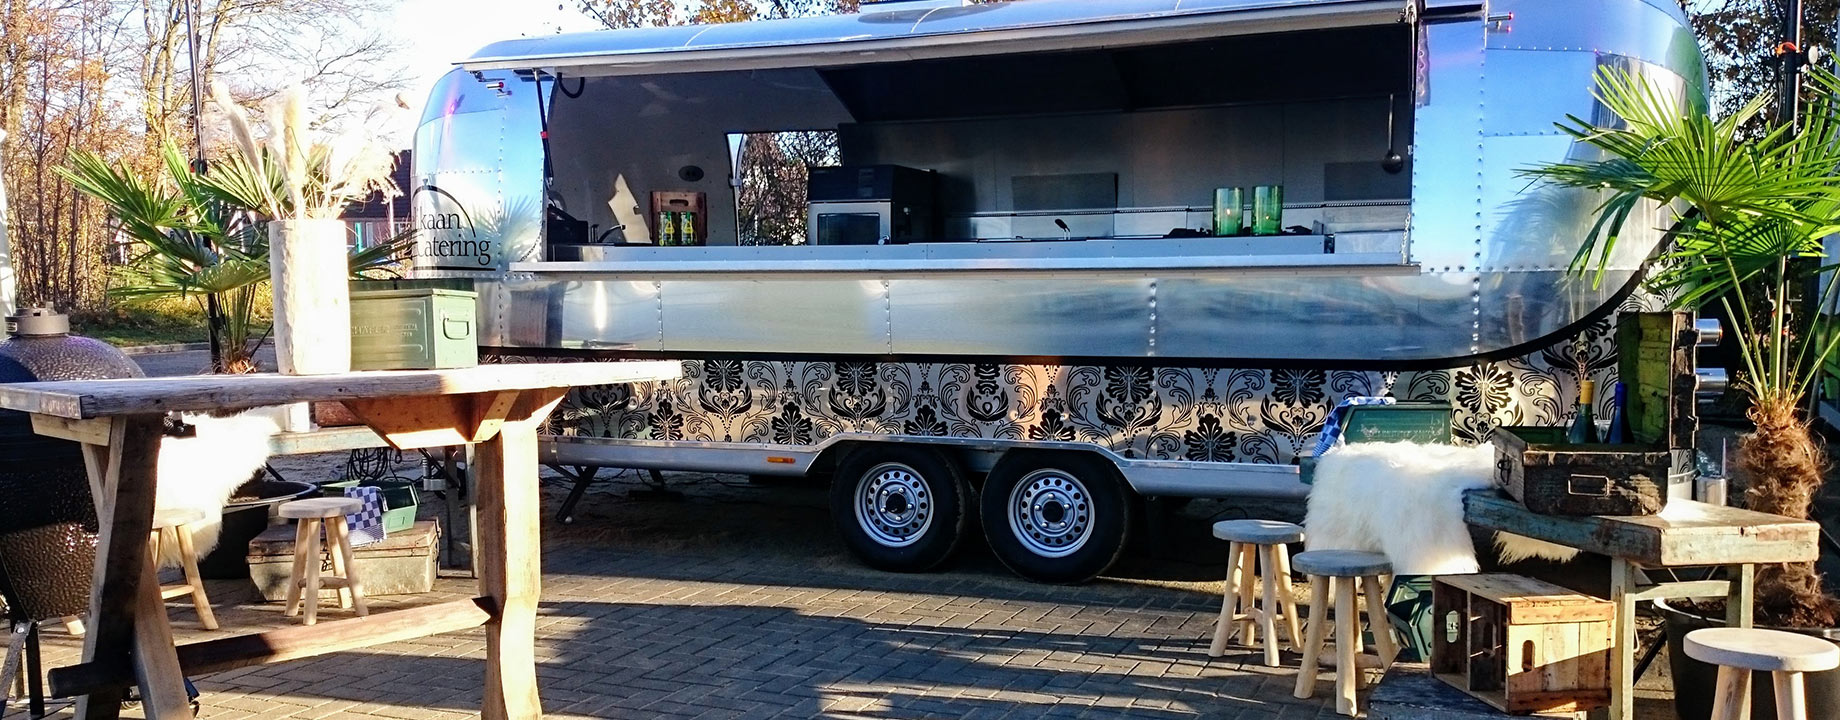 de pelikaan catering texel on wheels